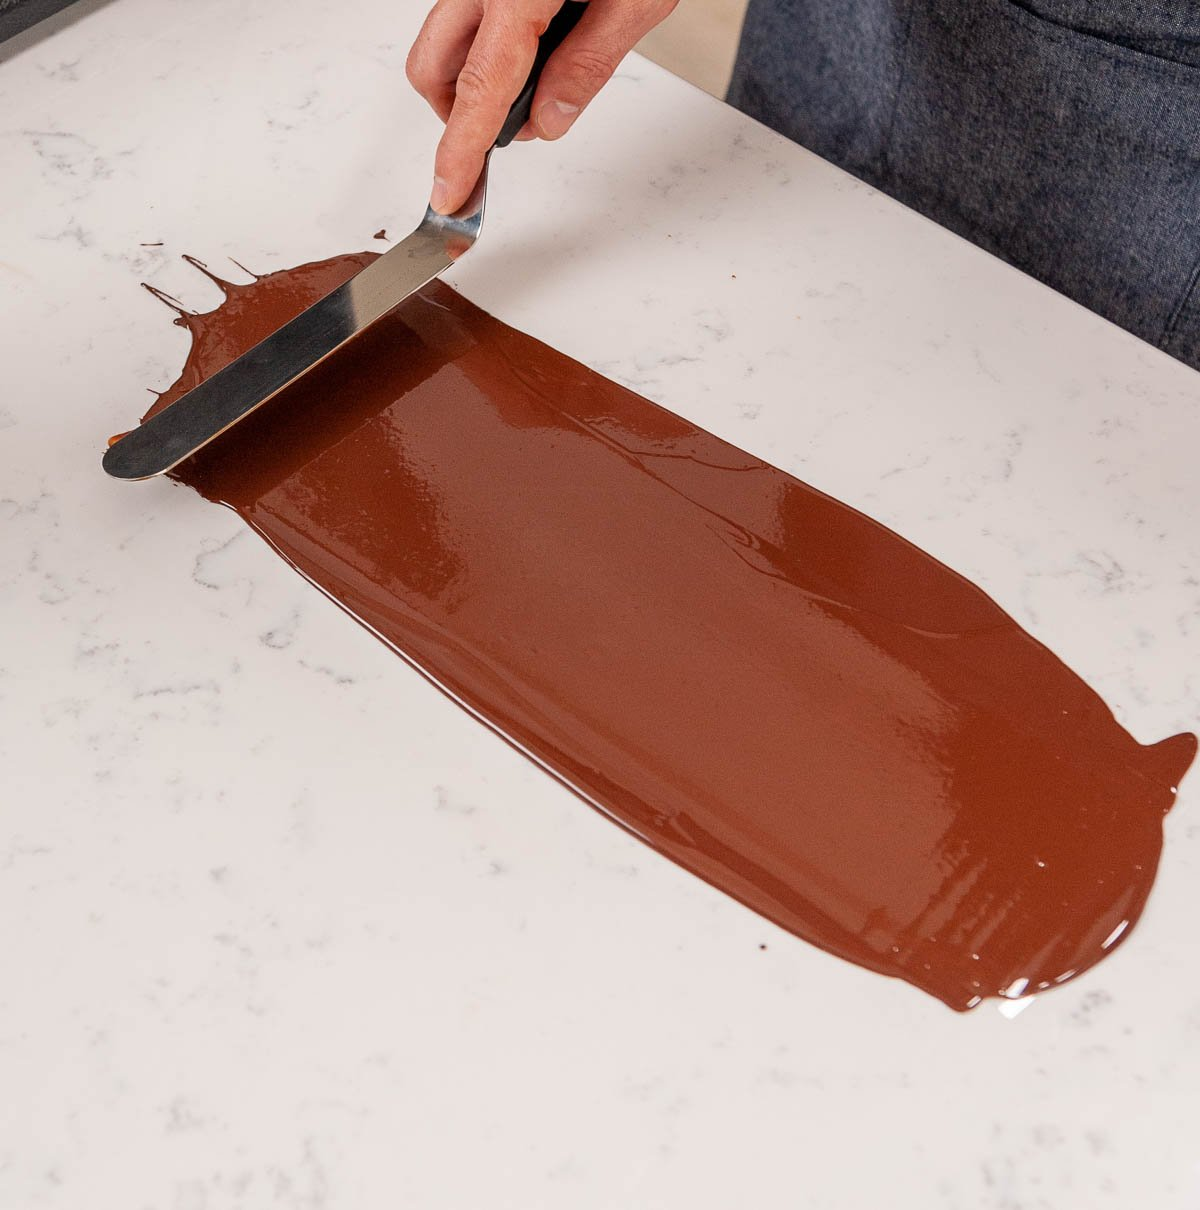 spreading tempered chocolate on acetate with an offset spatula